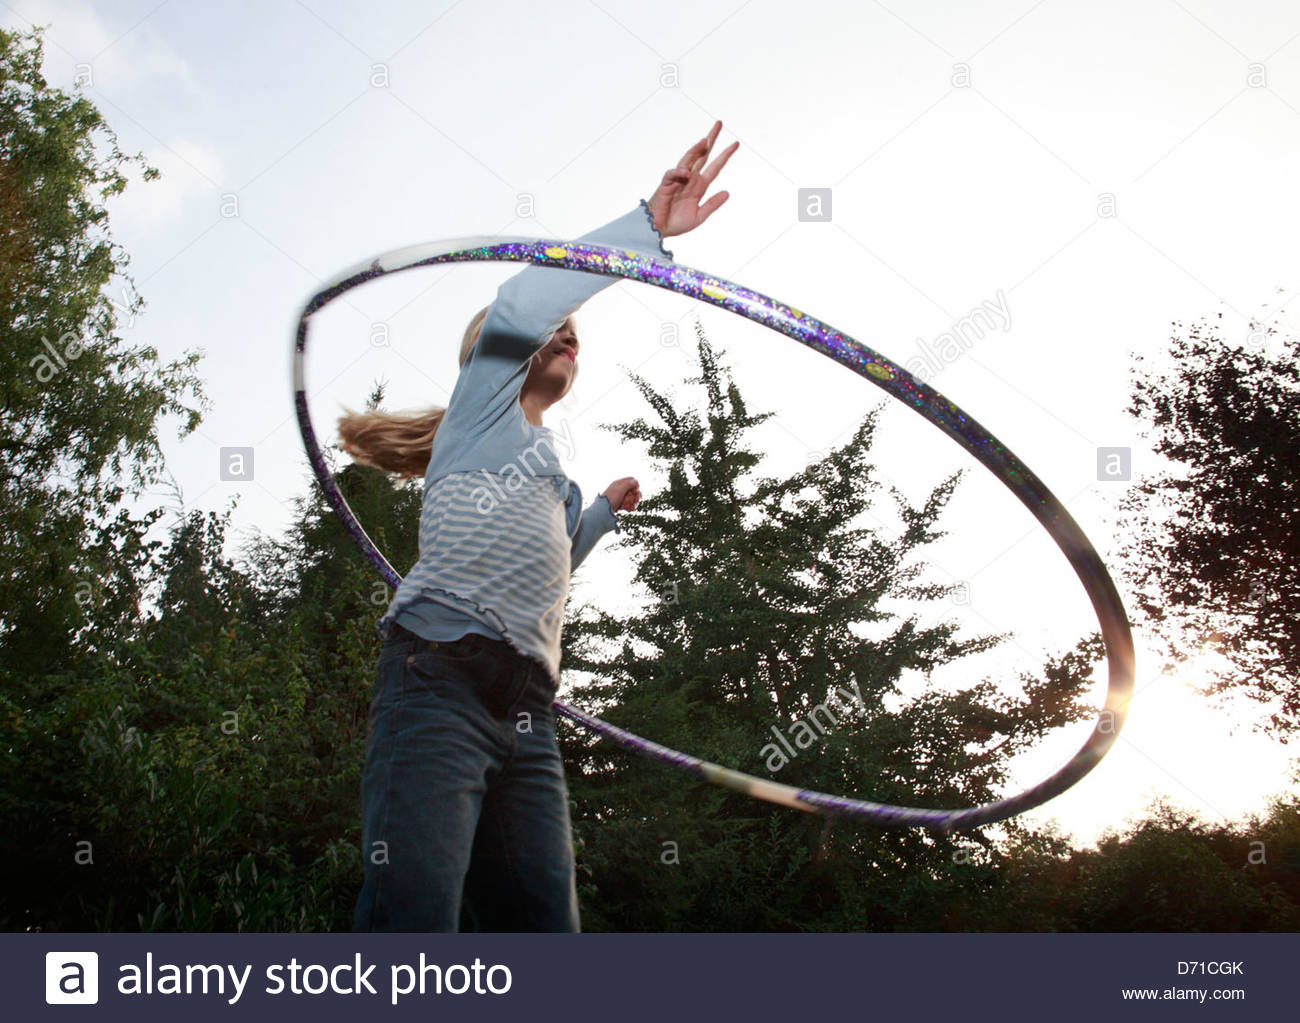 Low angle view of a girl playing with a hula hoop - Stock Image